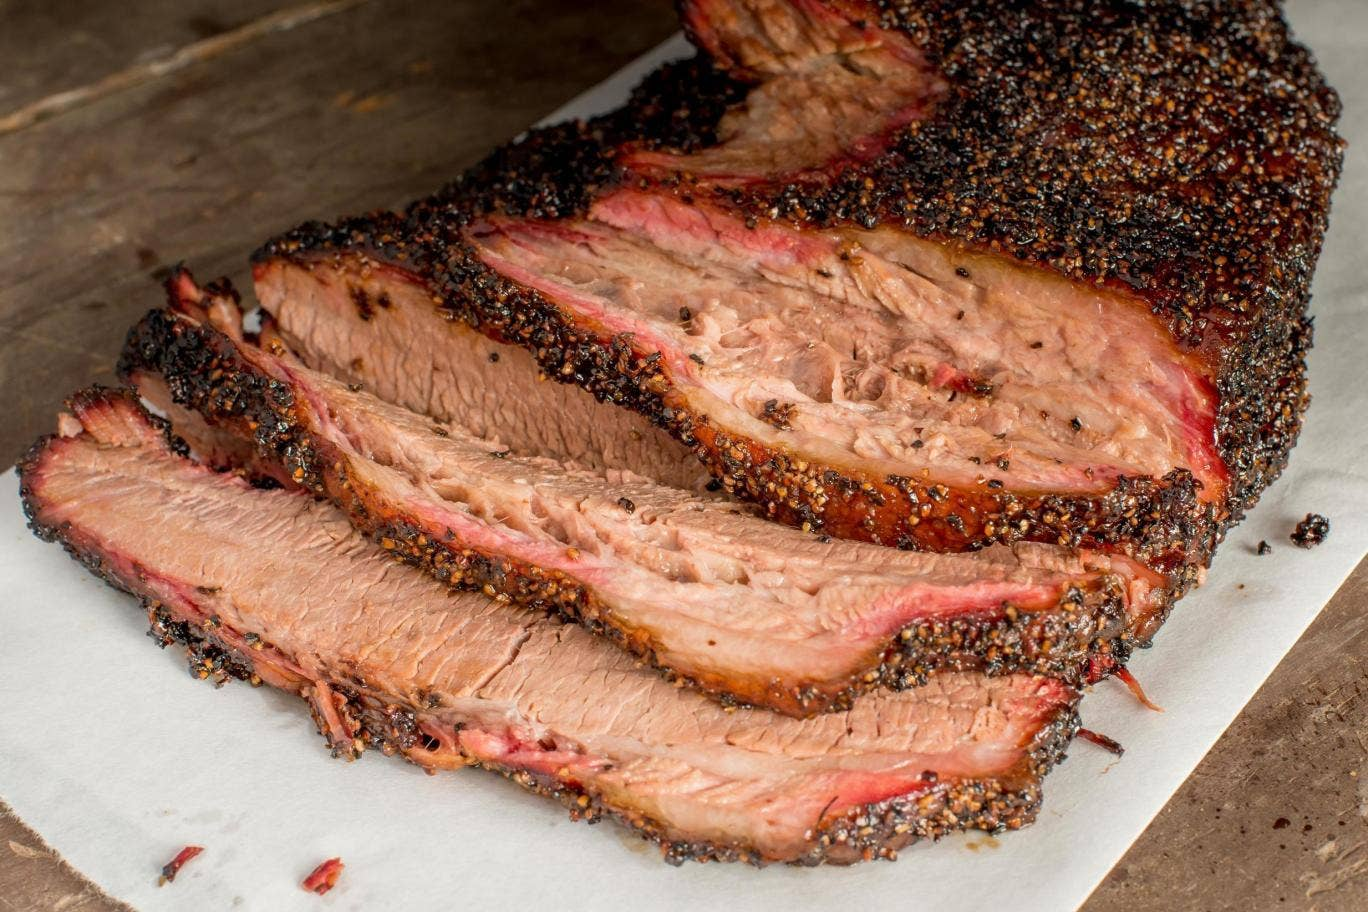 independent.co.uk - Chelsea Ritschel - Meat eaters outraged by vegan brisket posted on Twitter